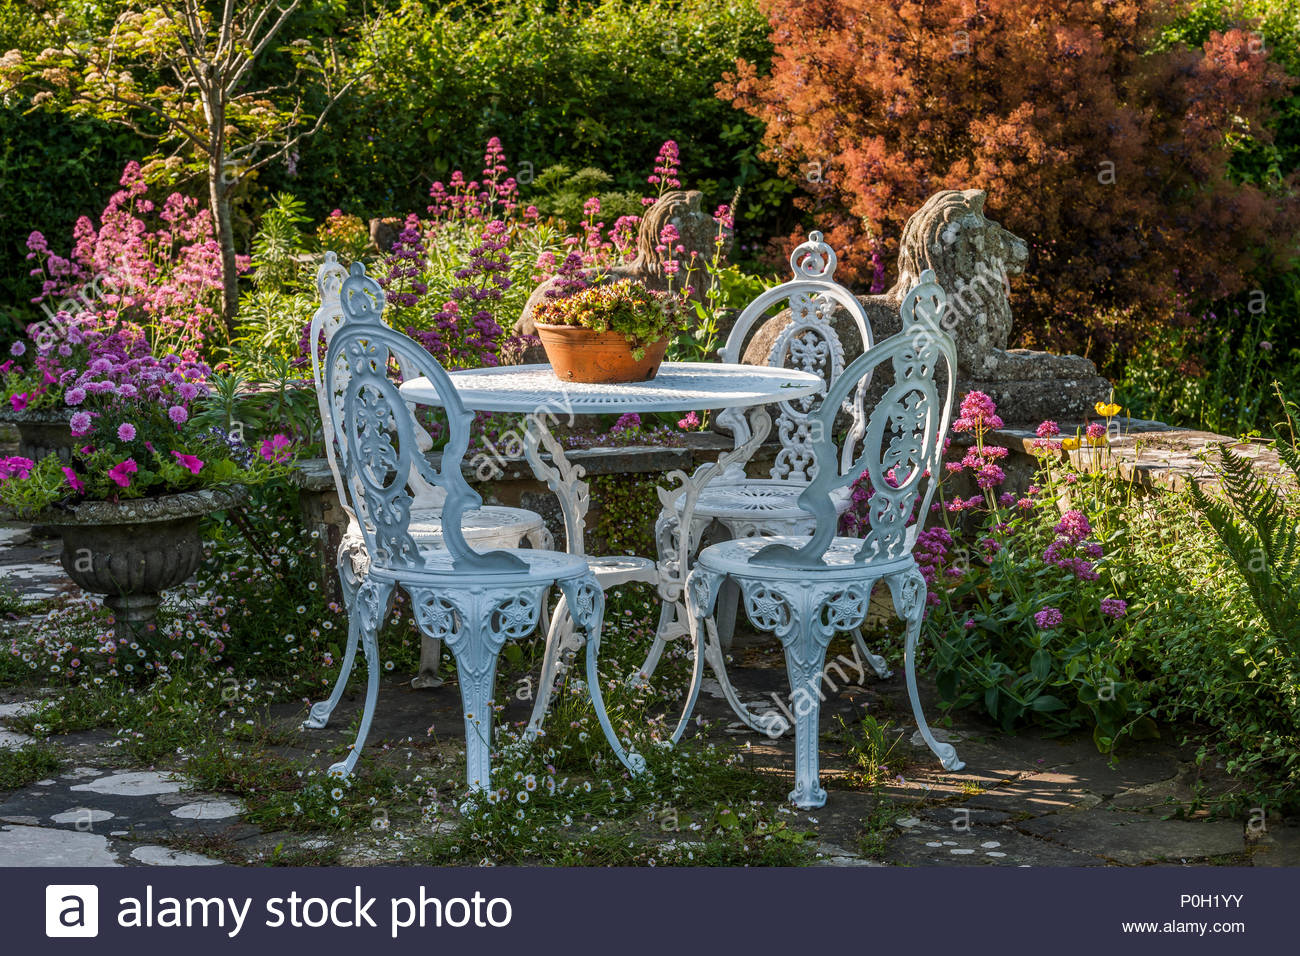 patio stockfotos patio bilder alamy. Black Bedroom Furniture Sets. Home Design Ideas